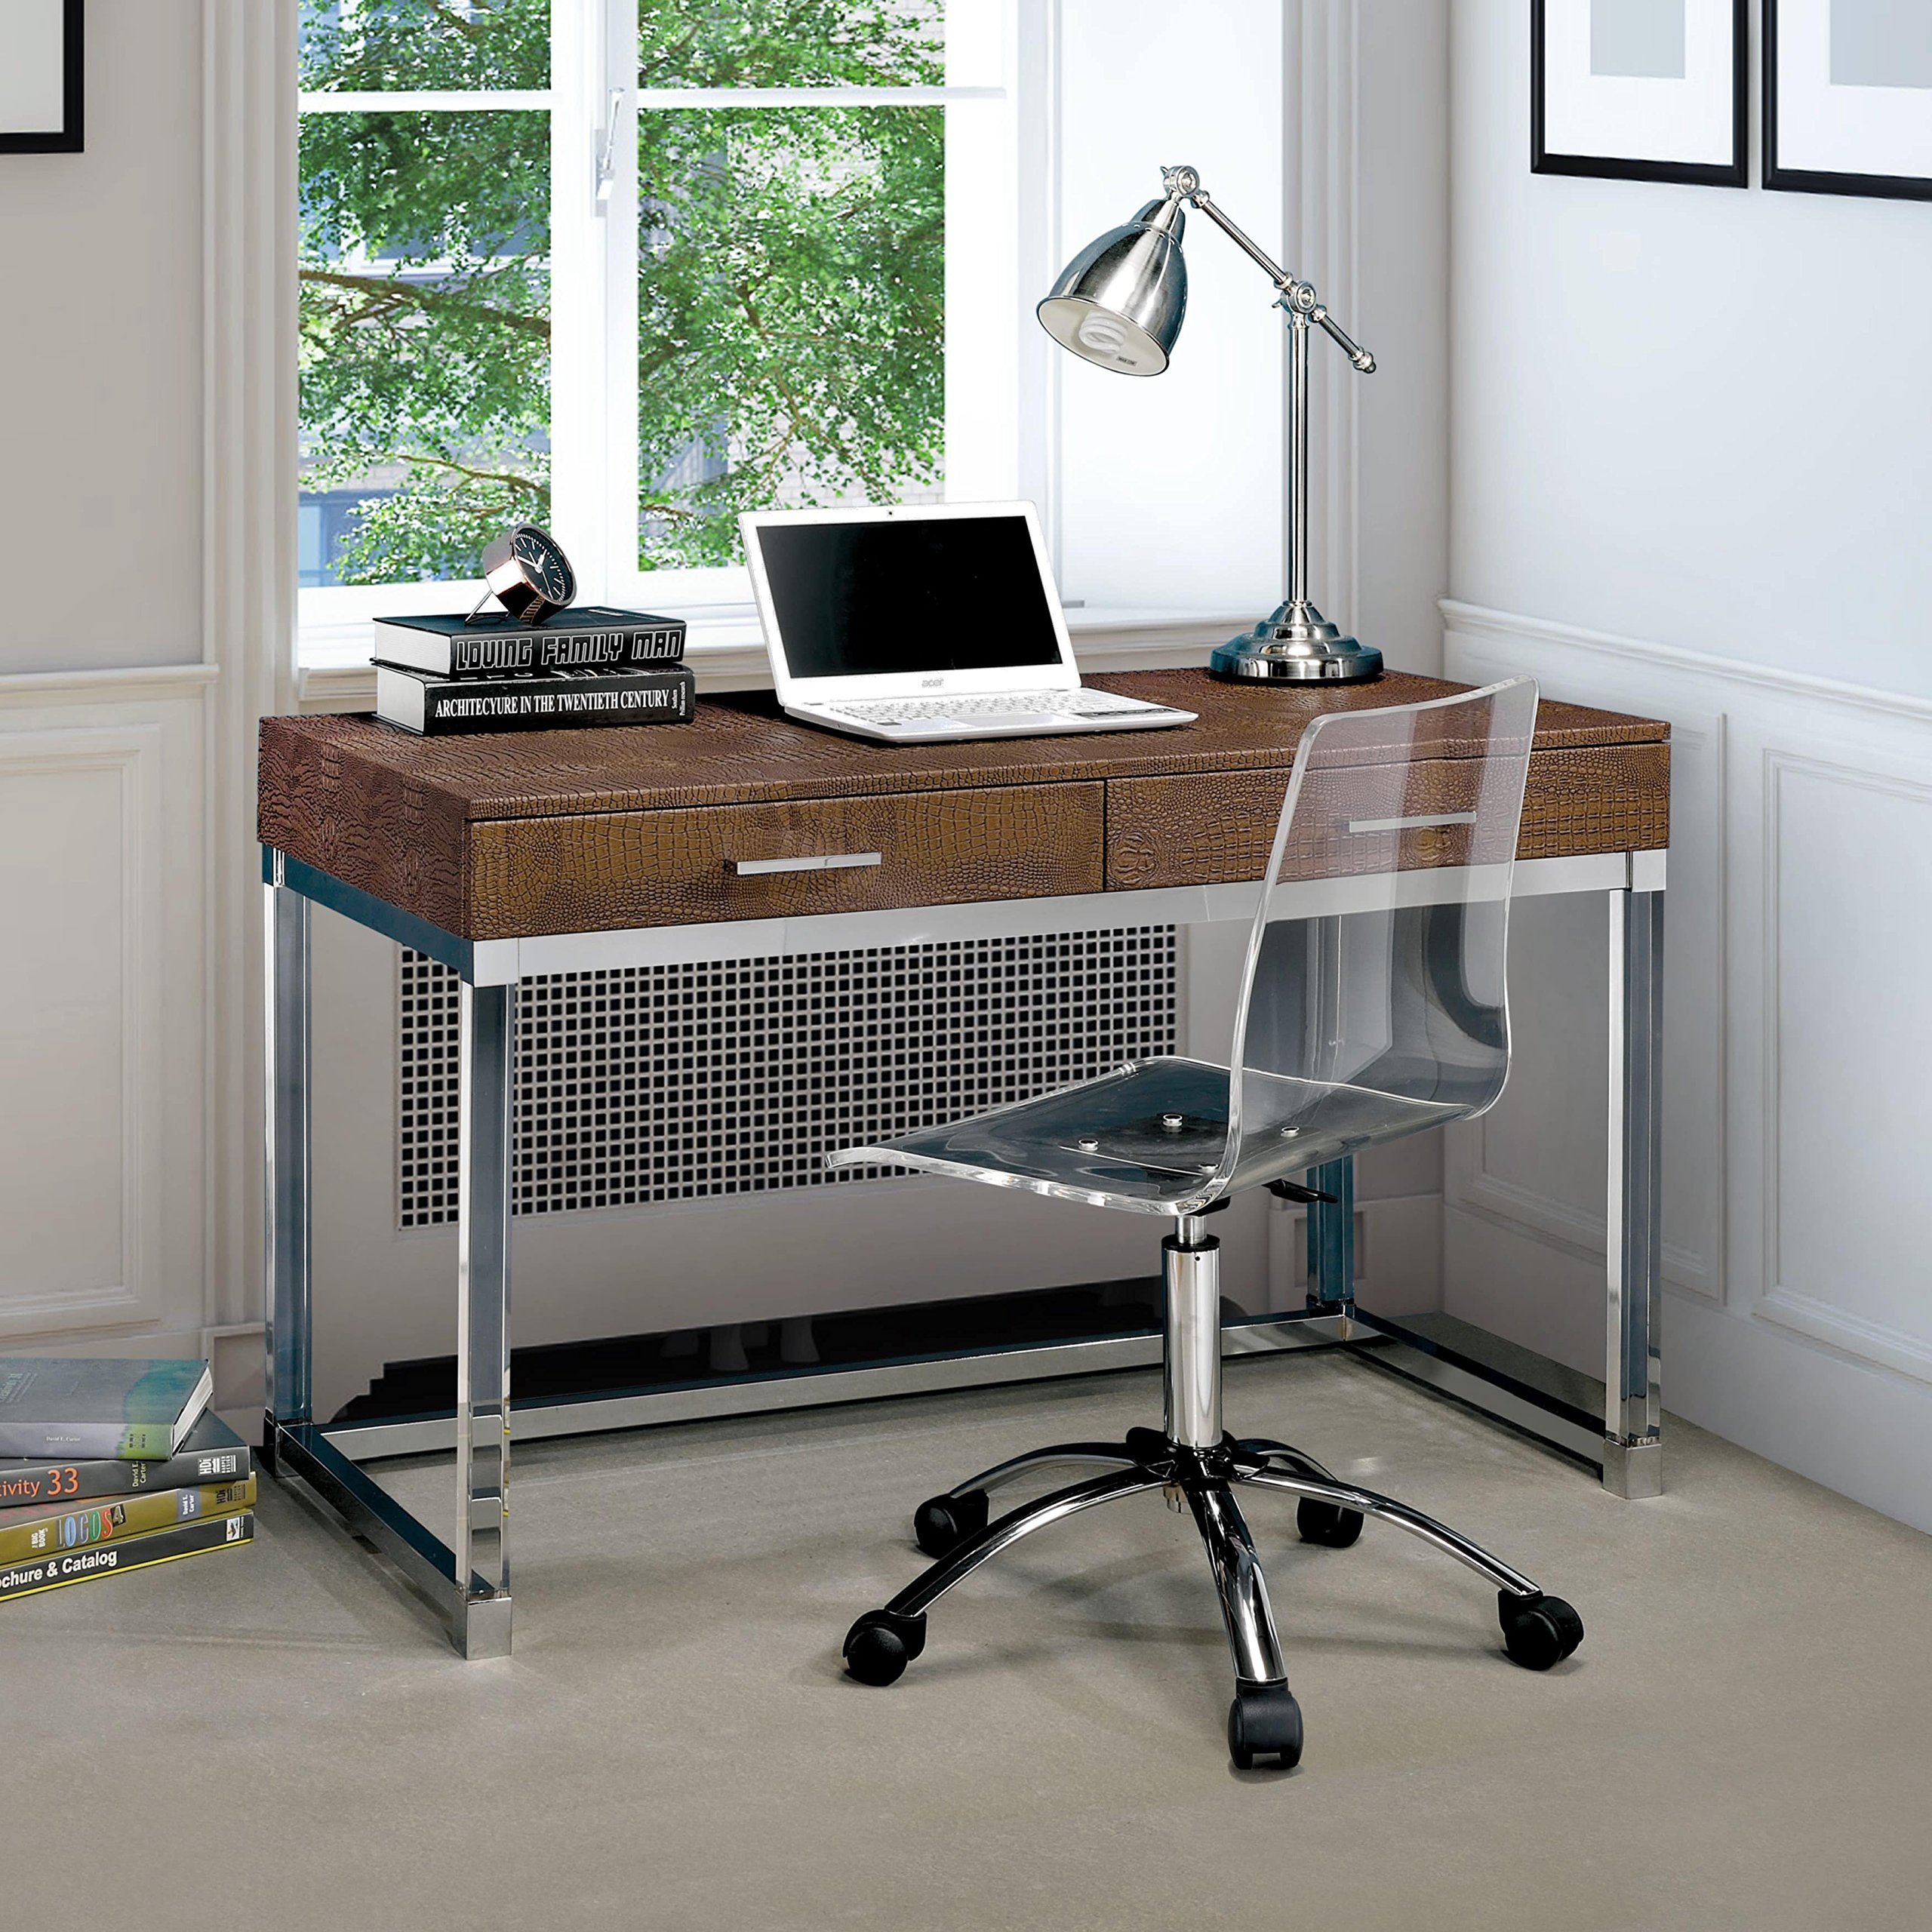 Furniture of America Mamel Contemporary 2-drawer Crocodile Textured Acrylic Computer Desk Brown